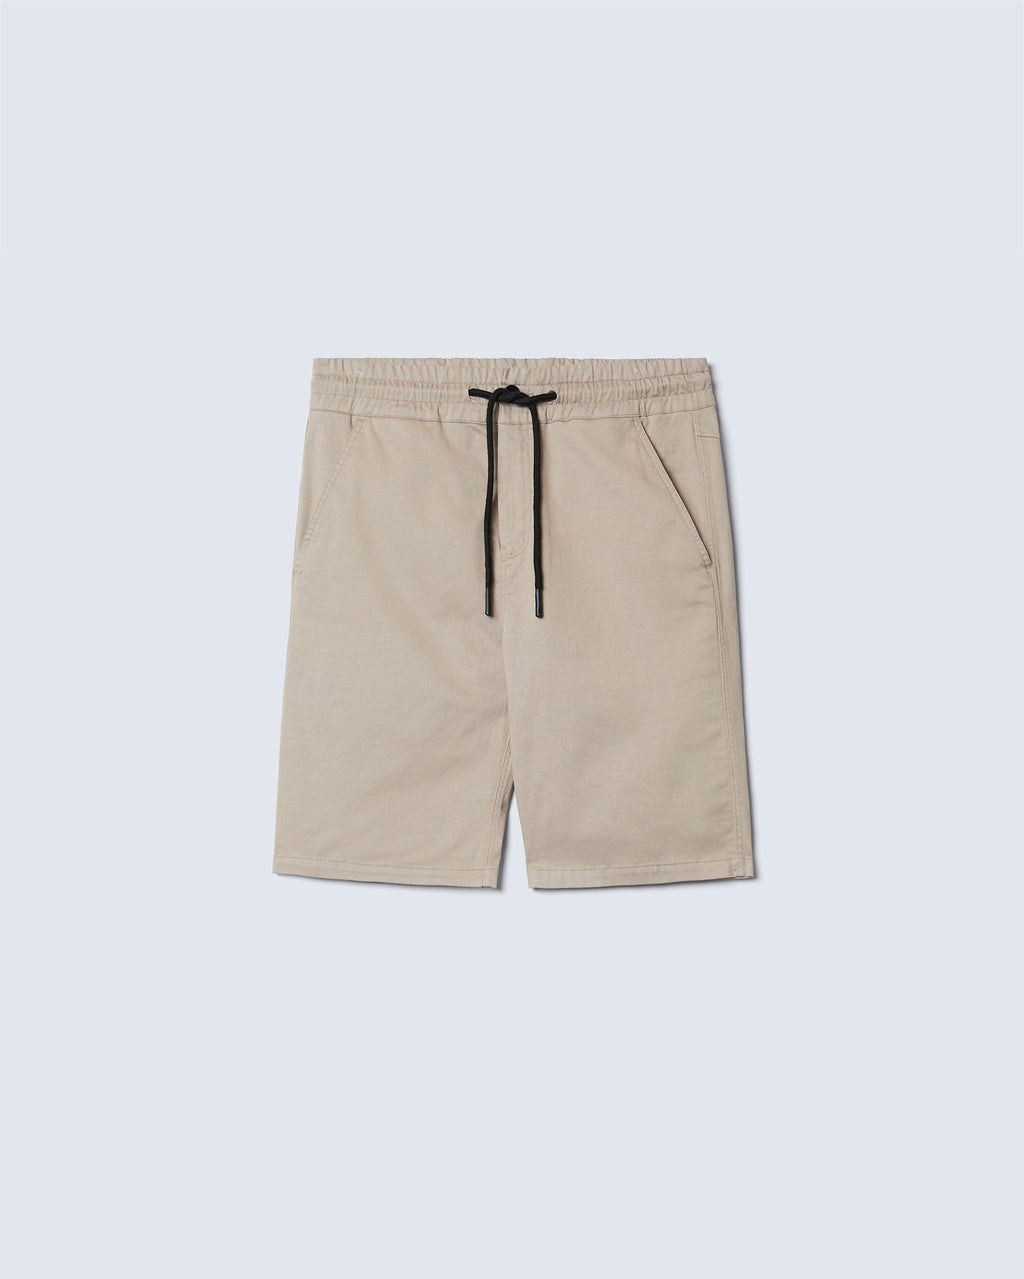 The Wyatt Short in Light Sand